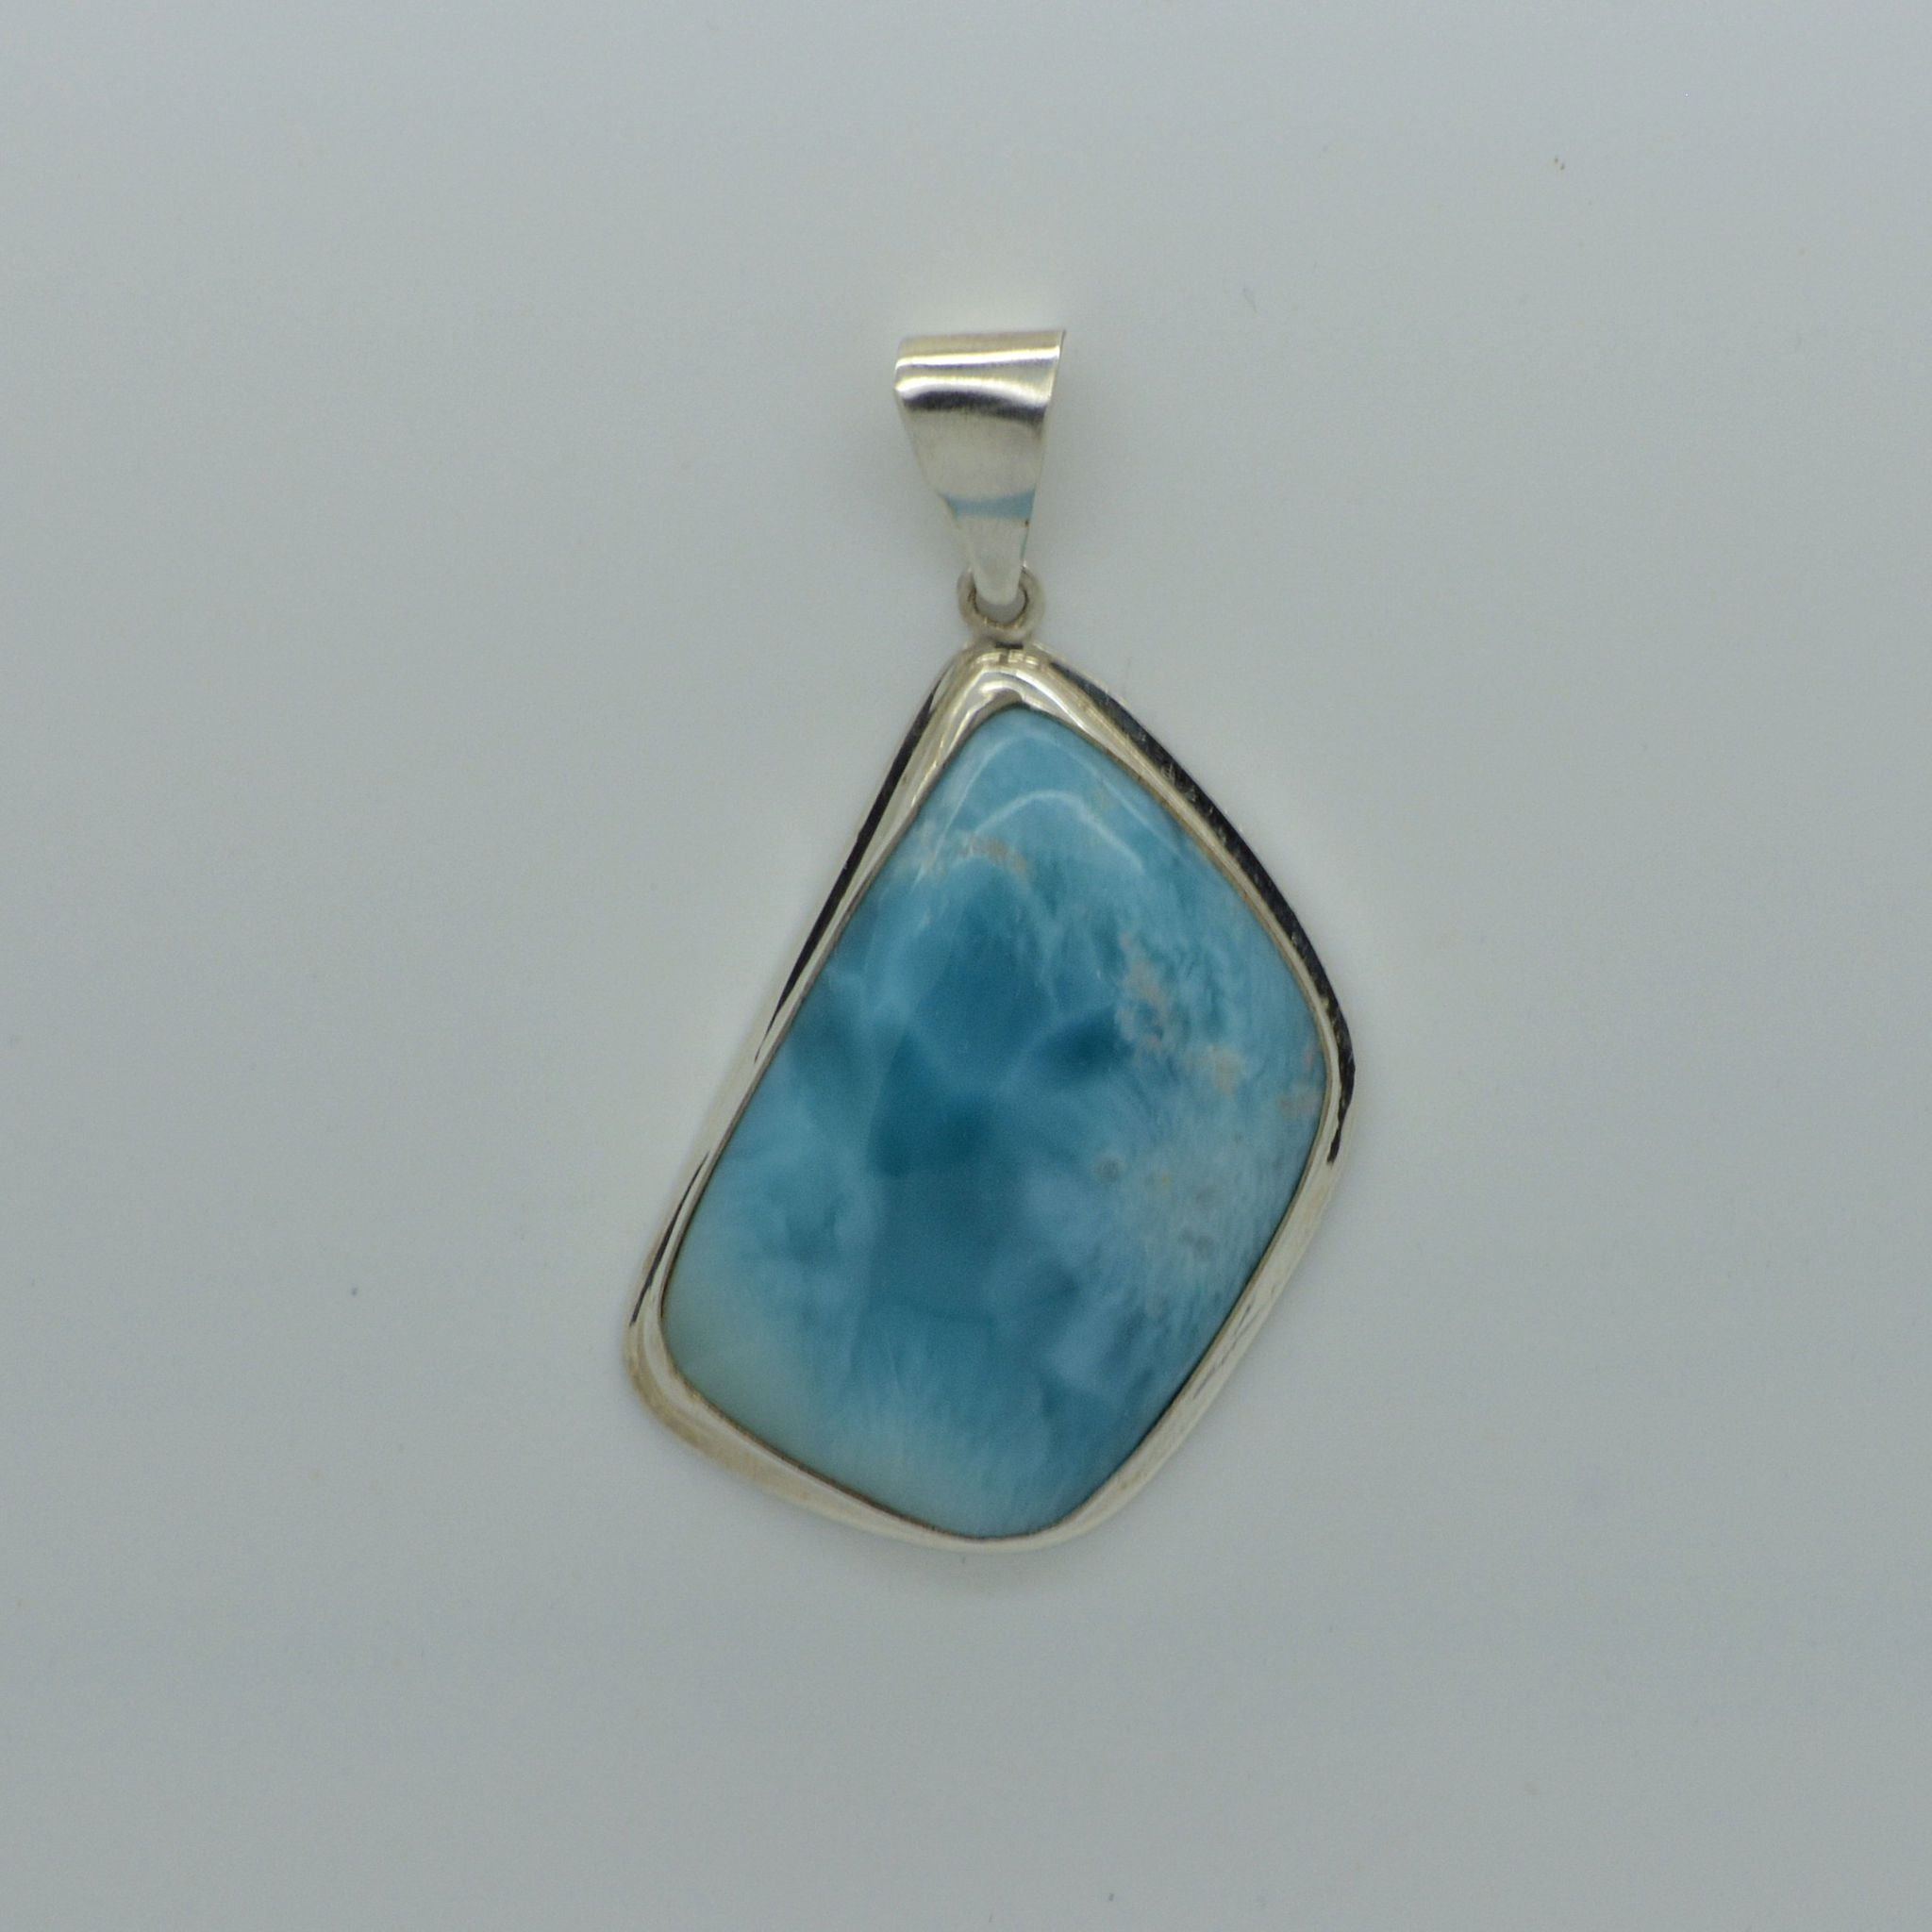 Medium Larimar Abstract Pendant 13.4g